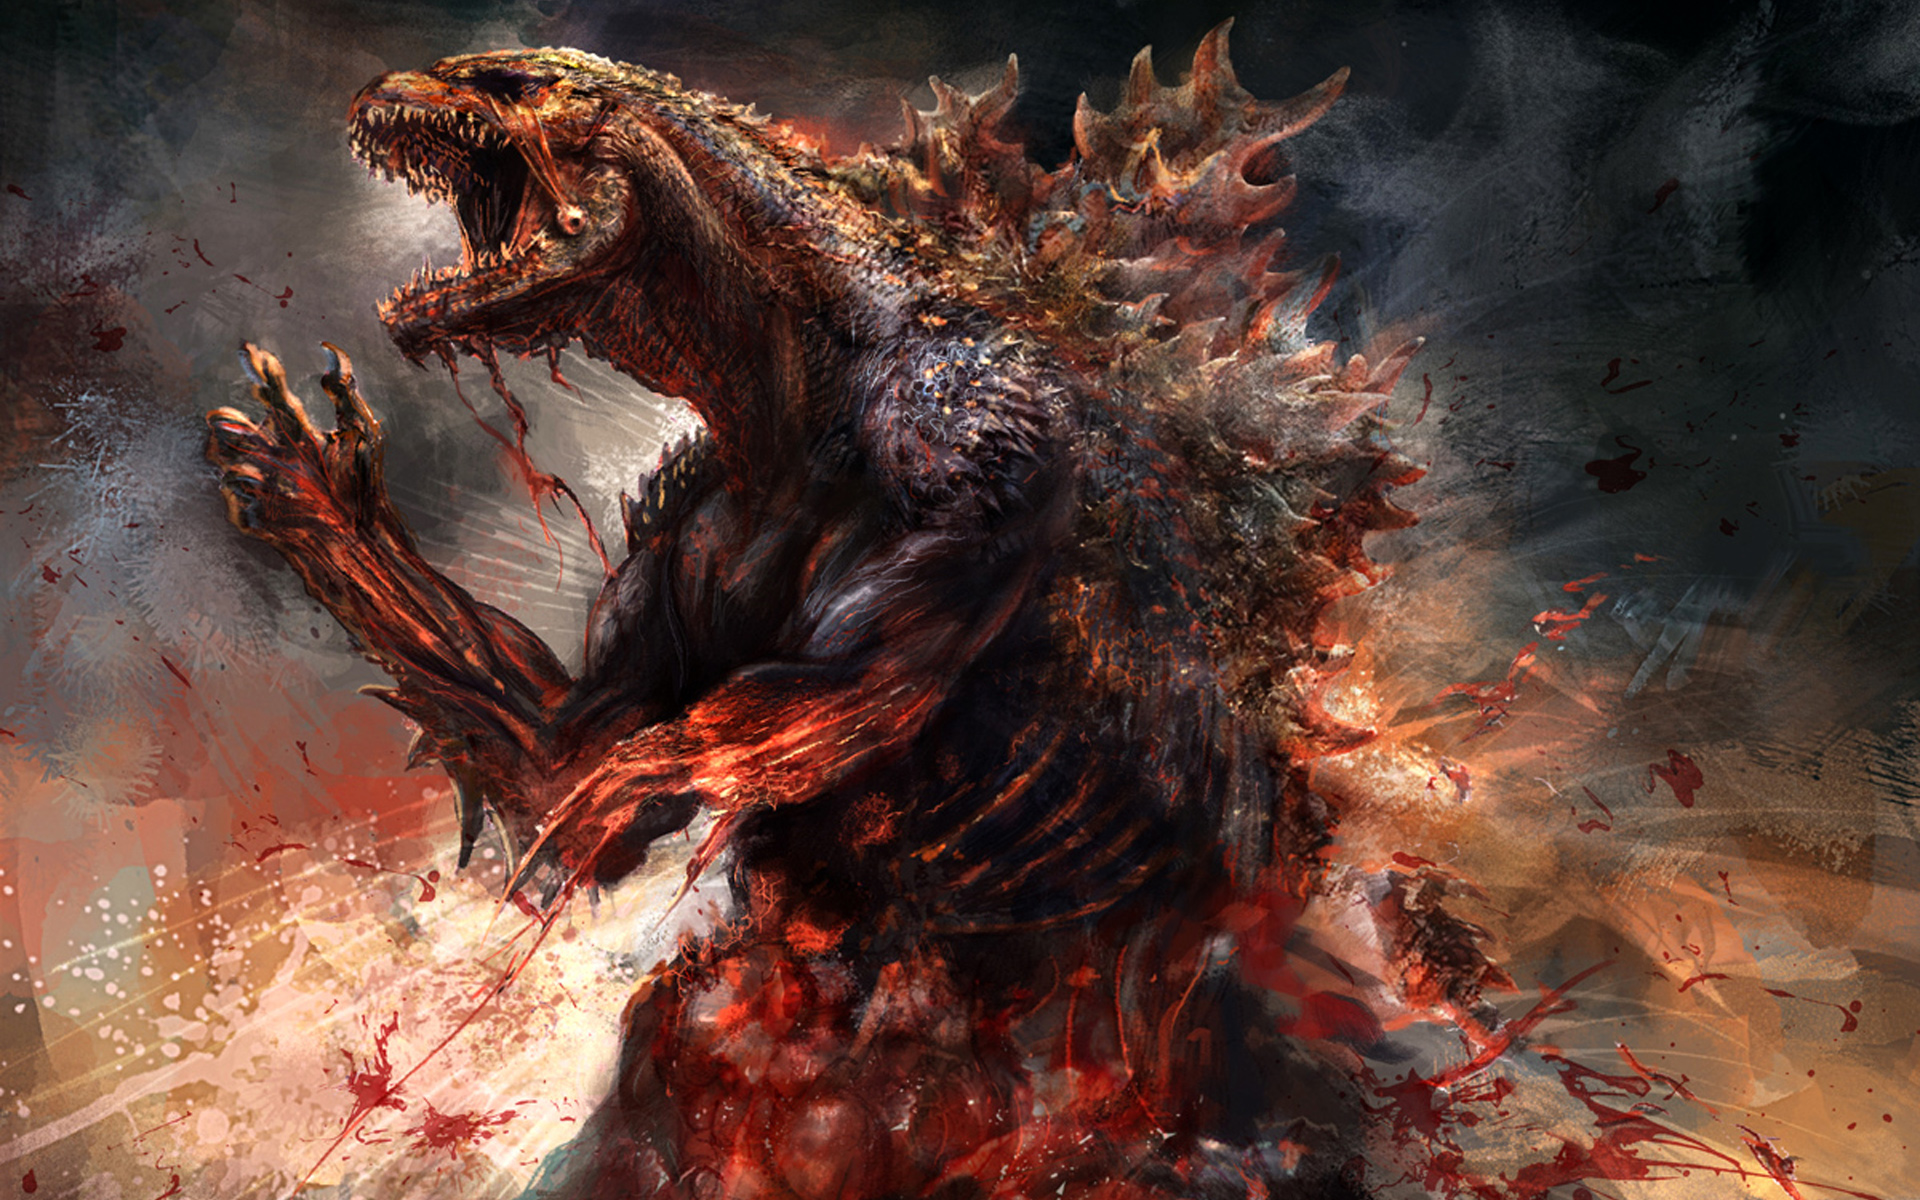 Godzilla 2014 Concept Artwork HD Wallpaper 1920x1200